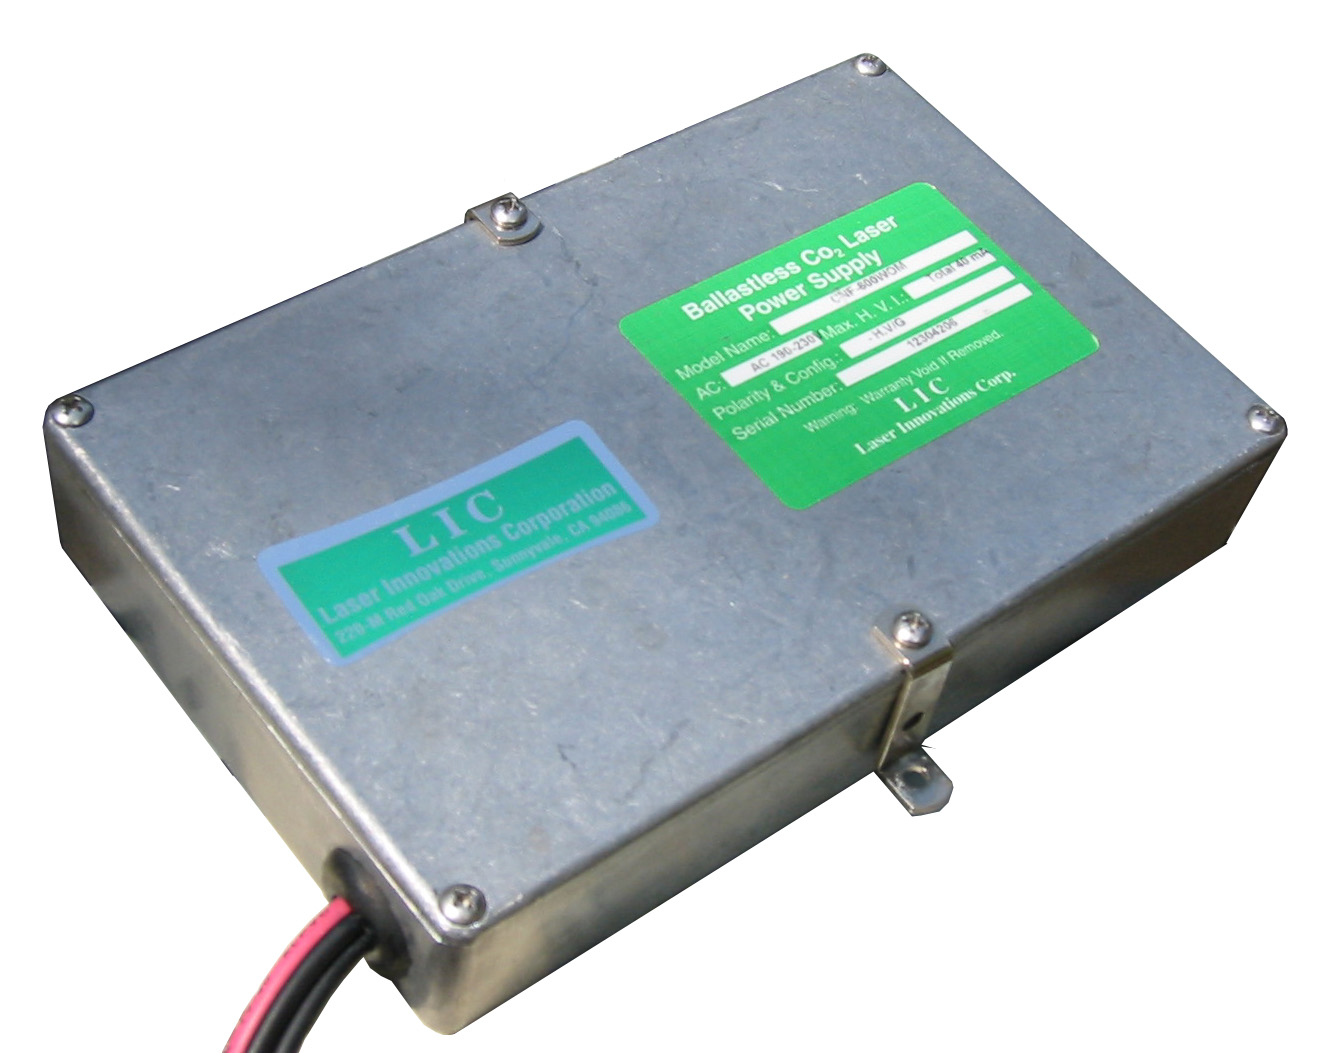 CPZ-200 – Ultra Compact CO2 Laser Power Supply